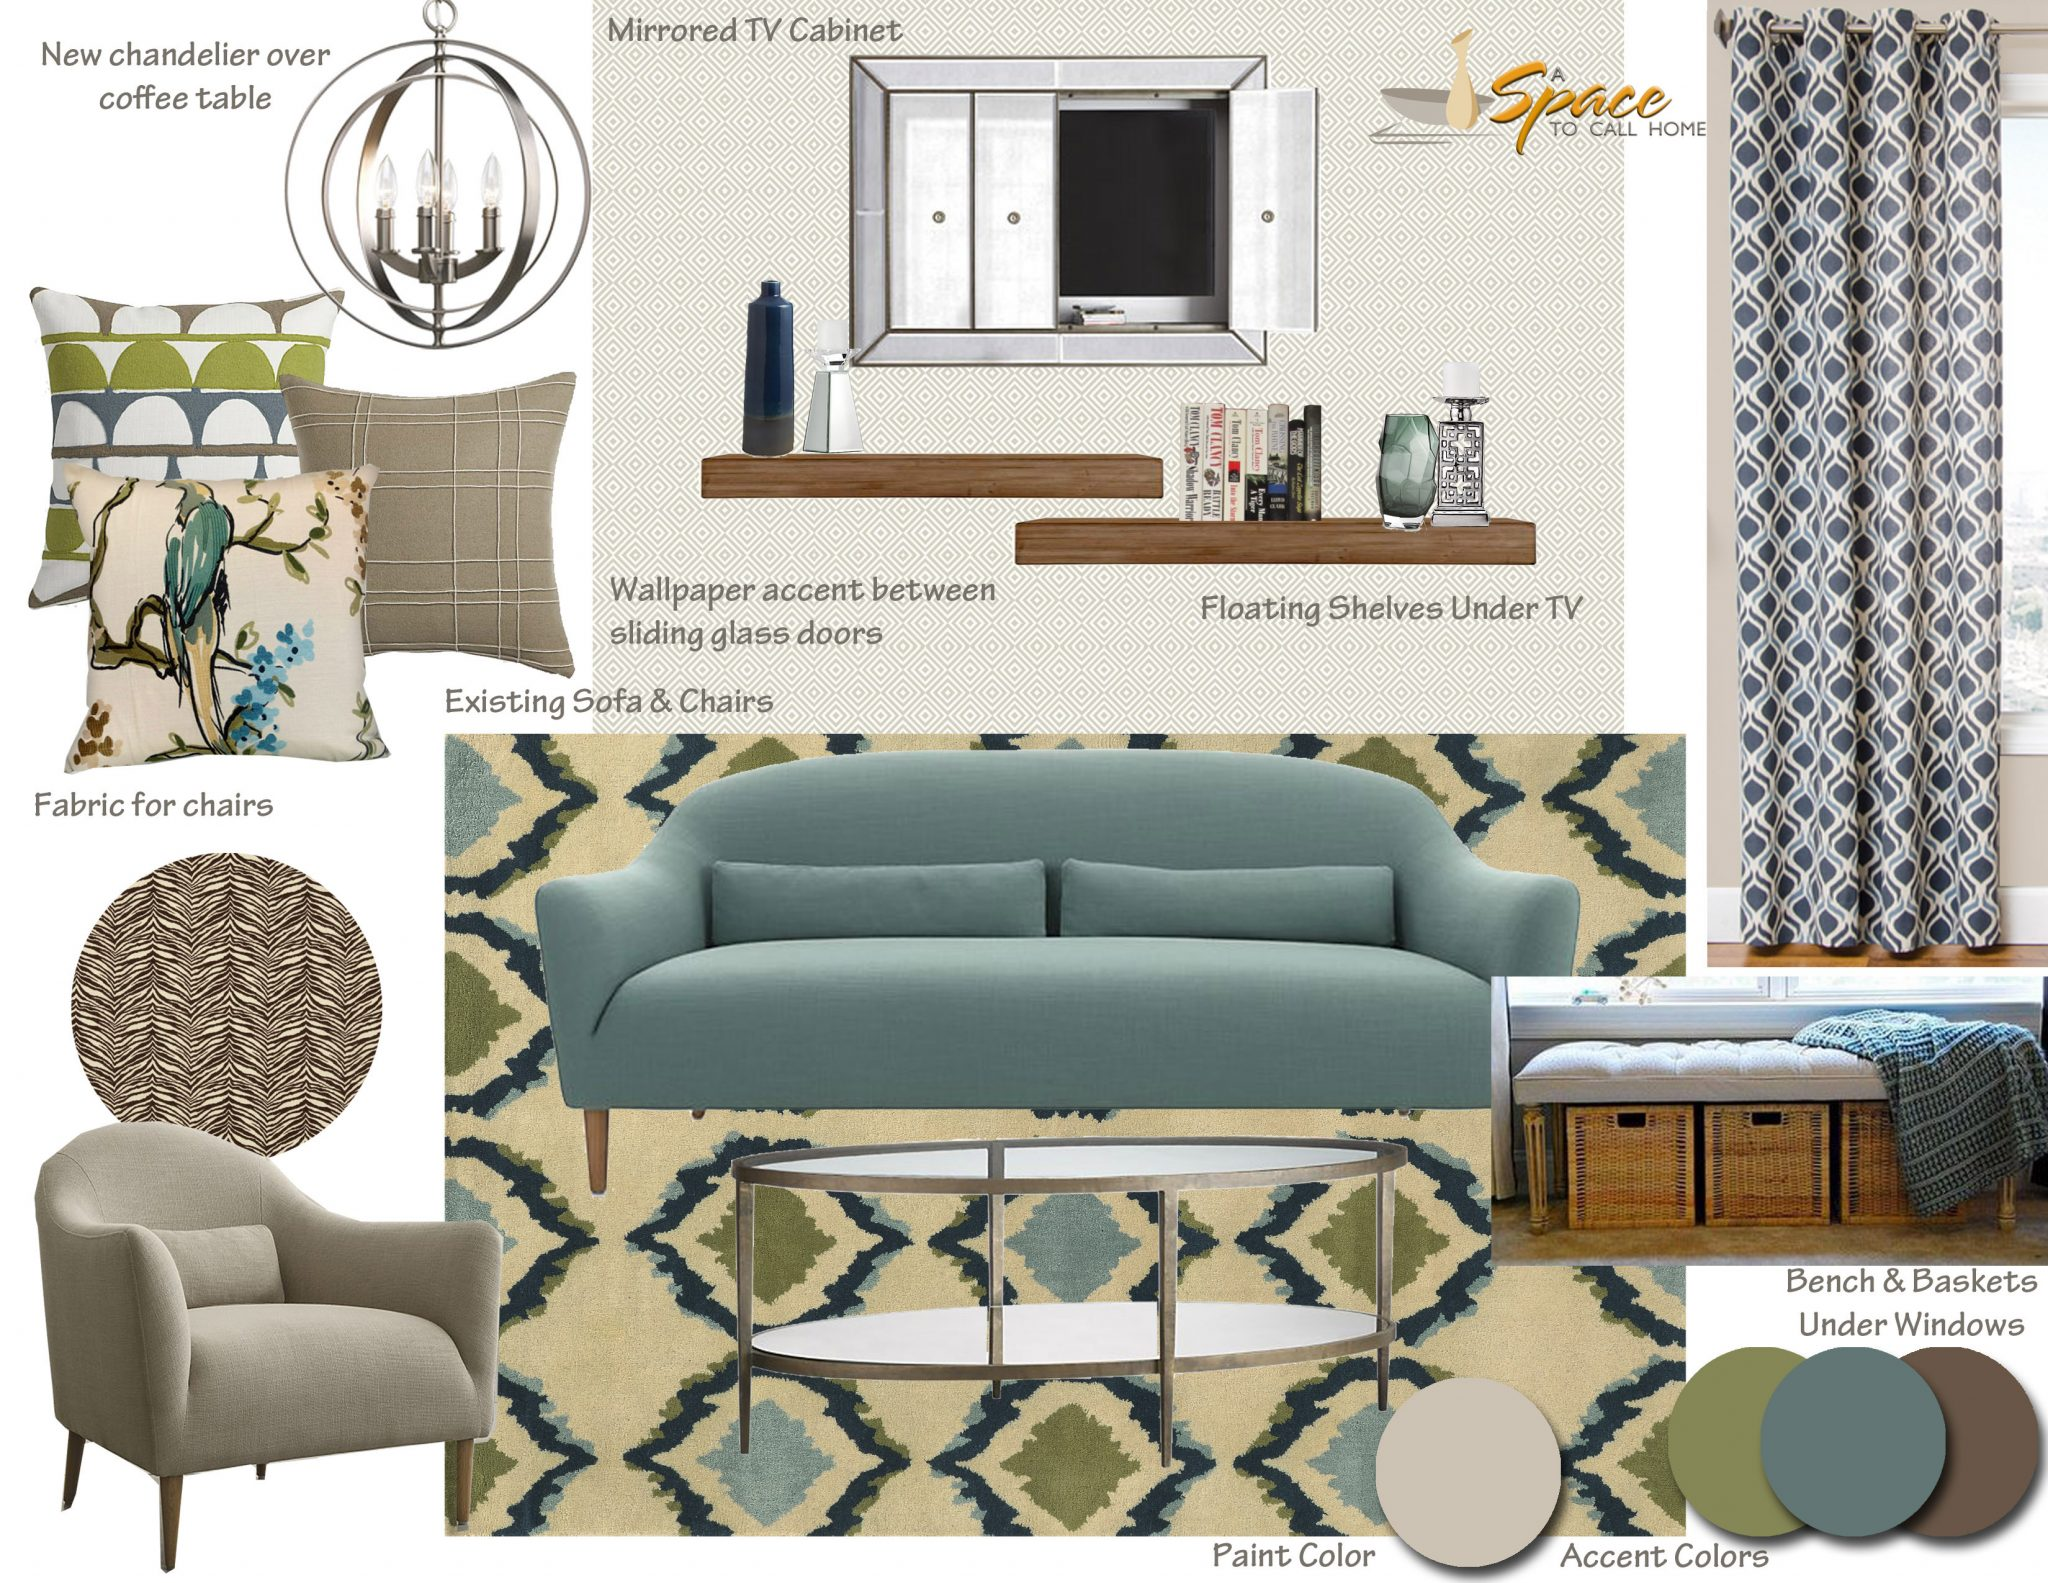 Mid century modern living room inspiration board a space for Modern decor